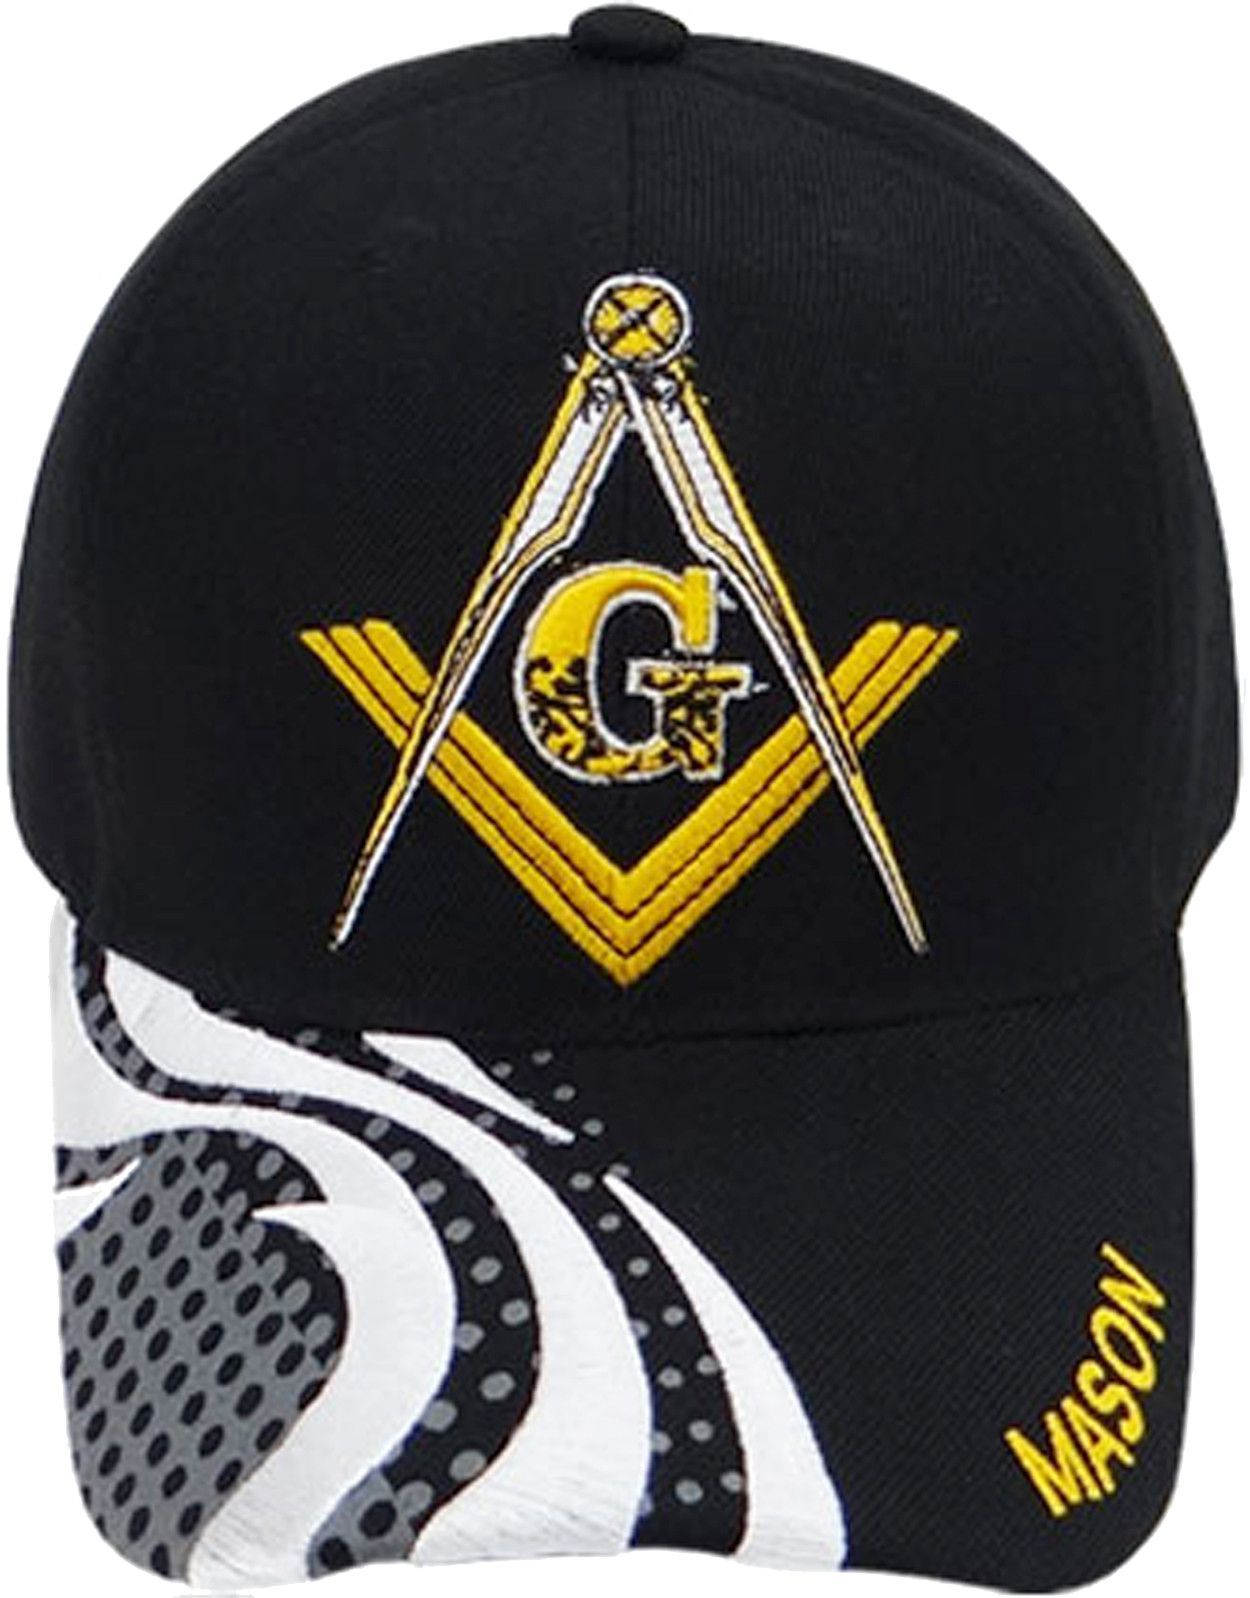 a3934609 Mason Hat Black Baseball Cap with Masonic Logo Freemasons Shriners Prince  Hall Lodge Headwear